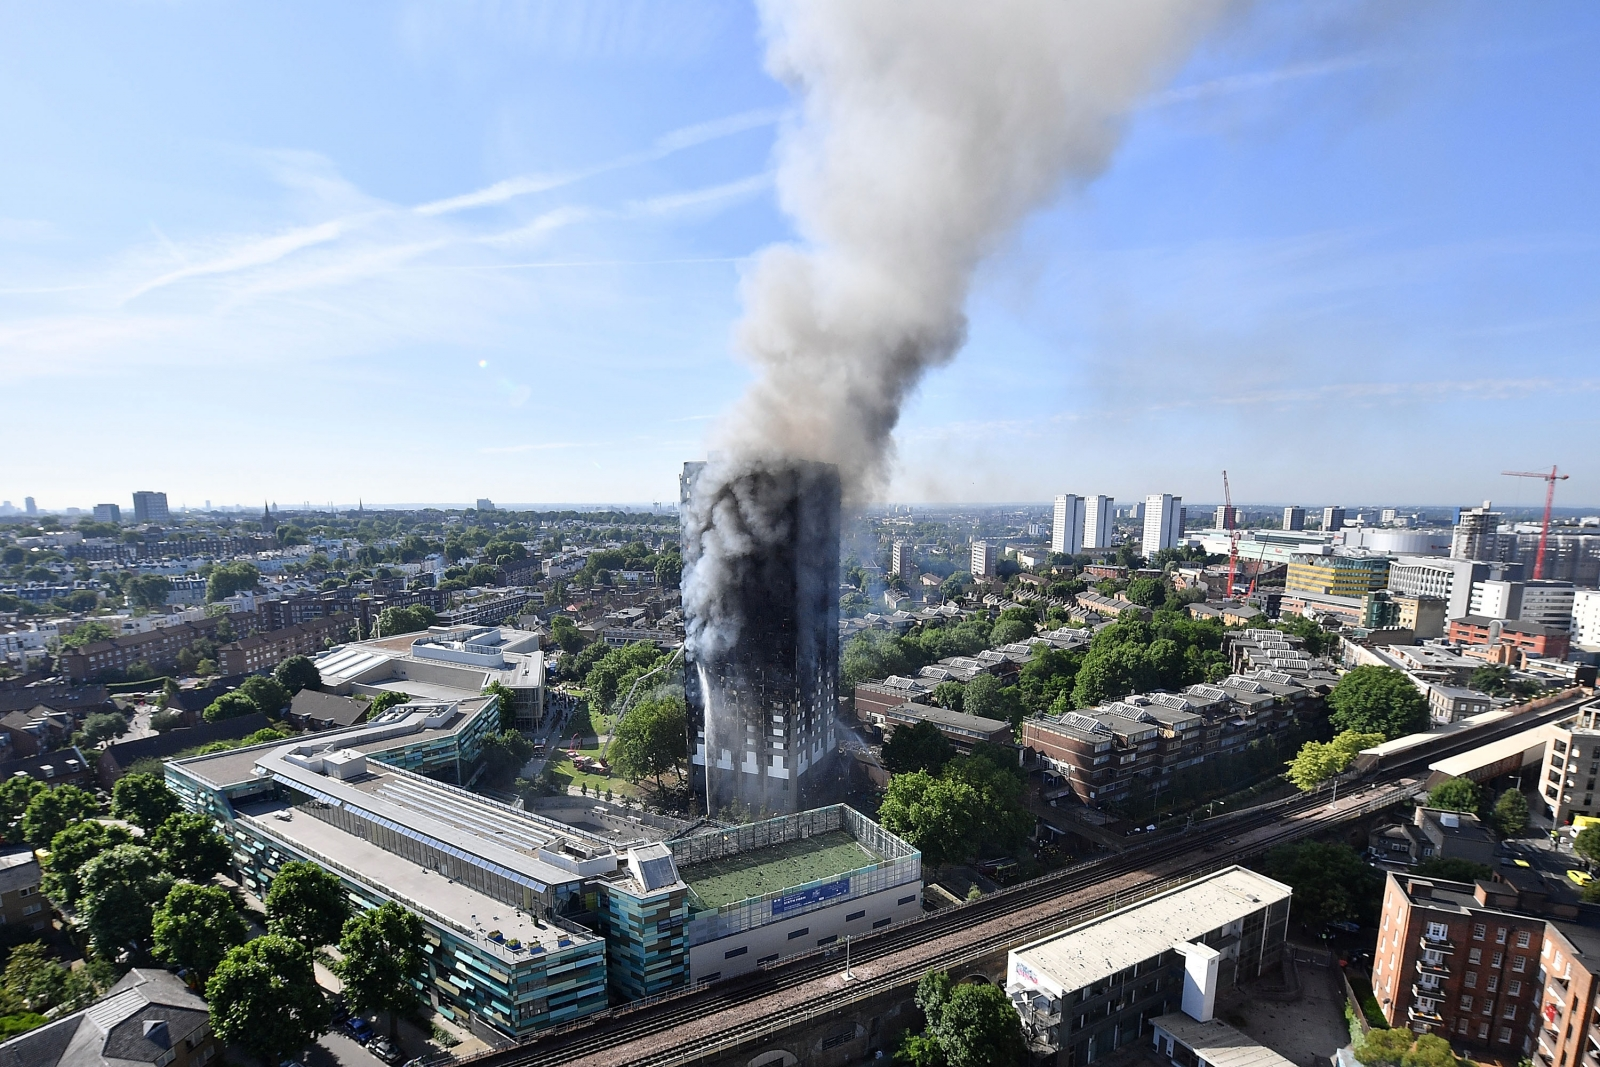 London Grenfell Tower Fire - cover